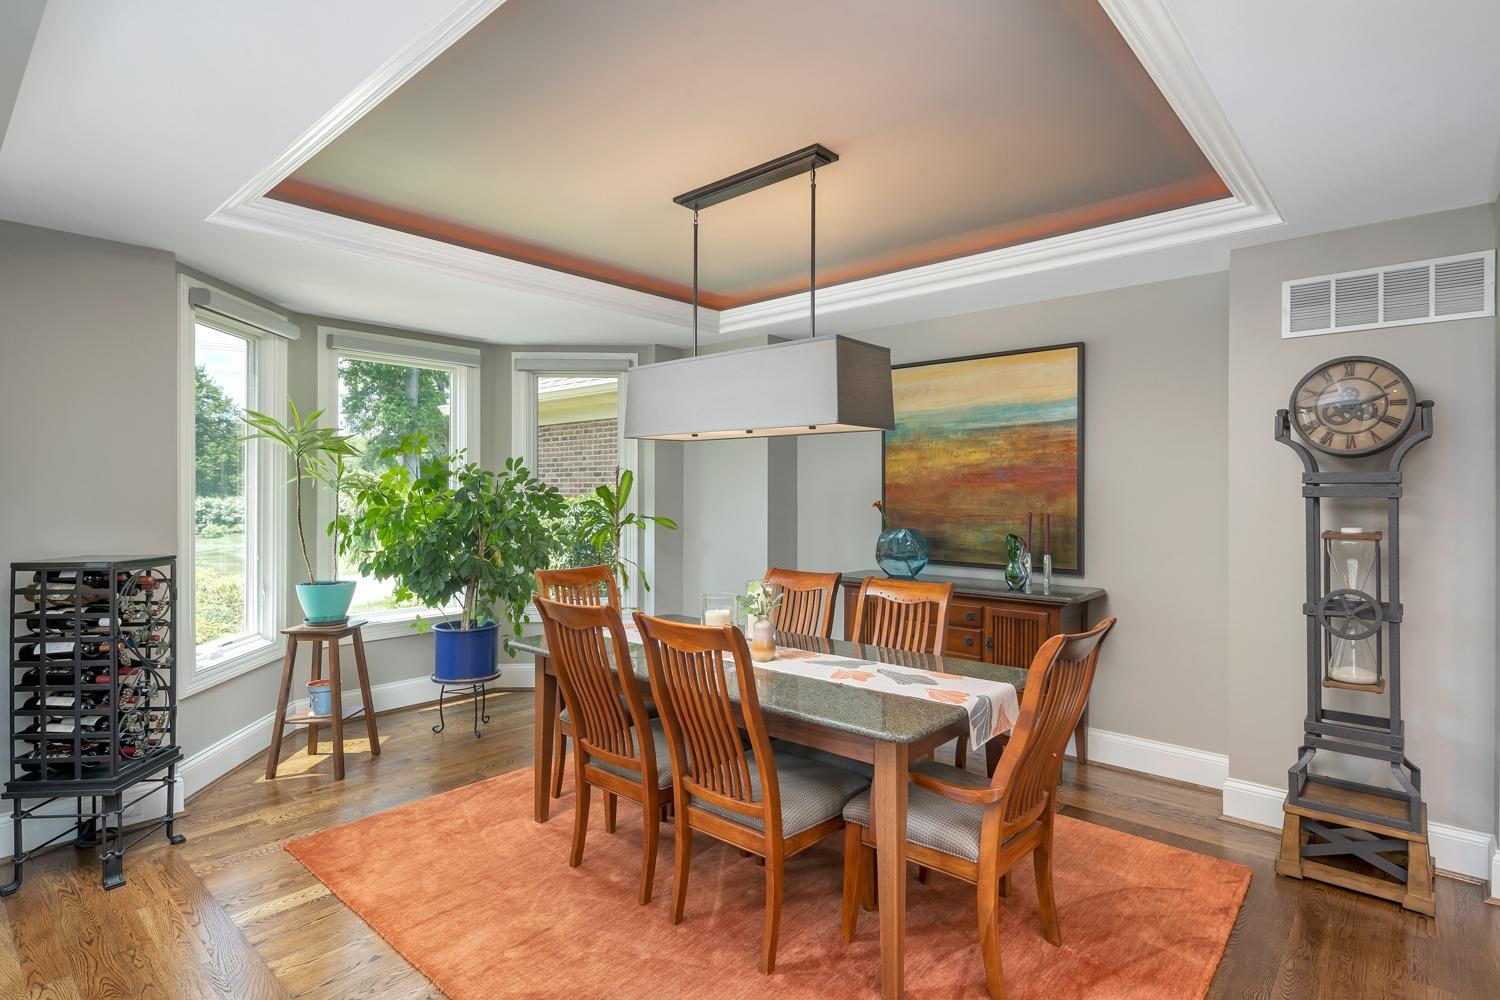 Dining area features tray ceiling, hardwood floors, bay windows, upscale lighting, and is perfect for entertaining guests.